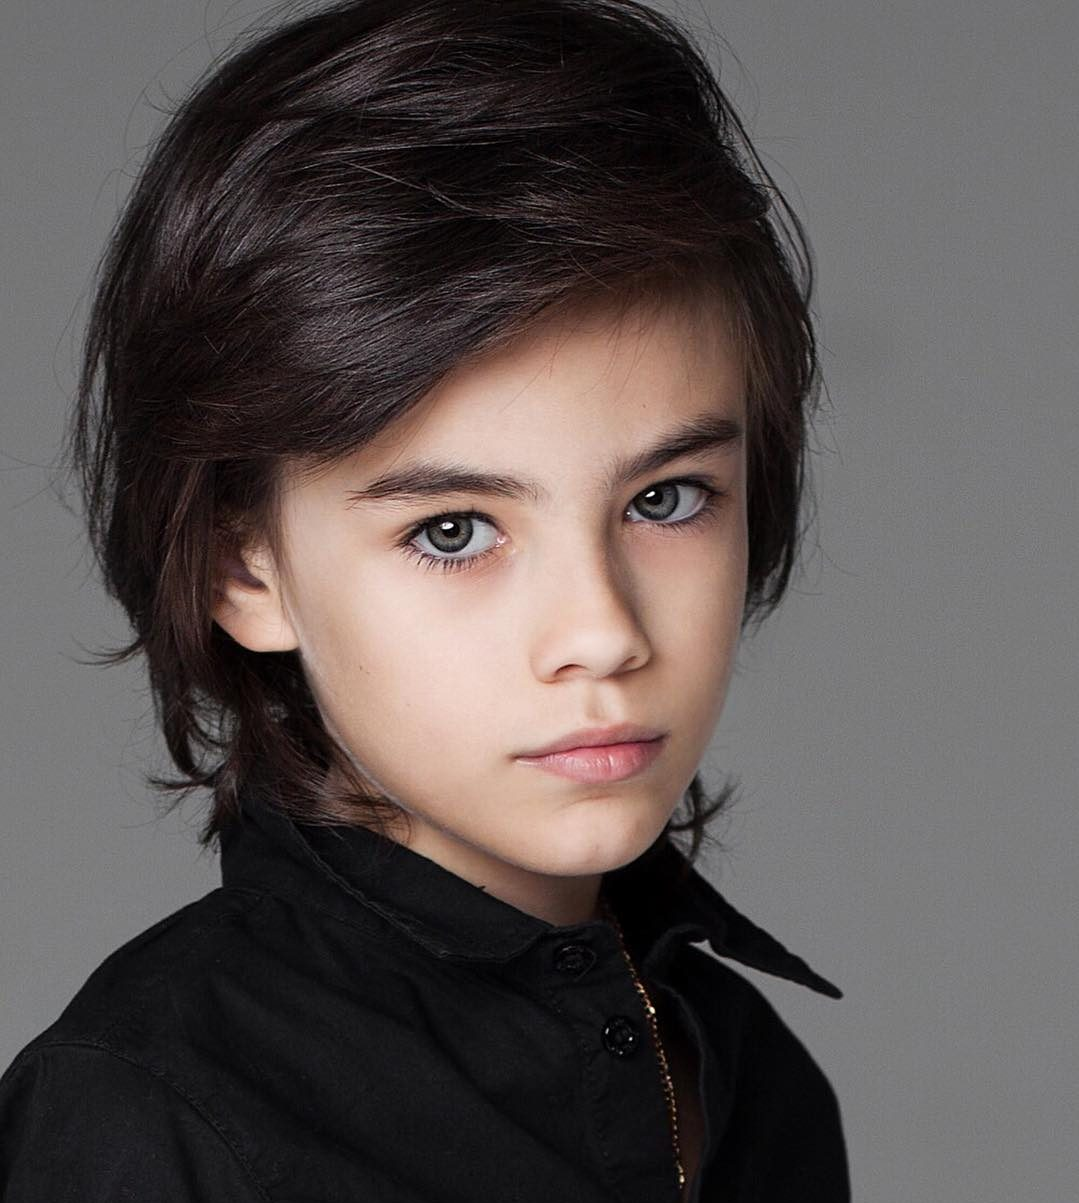 50 Stunning Boys Long Hairstyles Redefining Your Kids Appearance